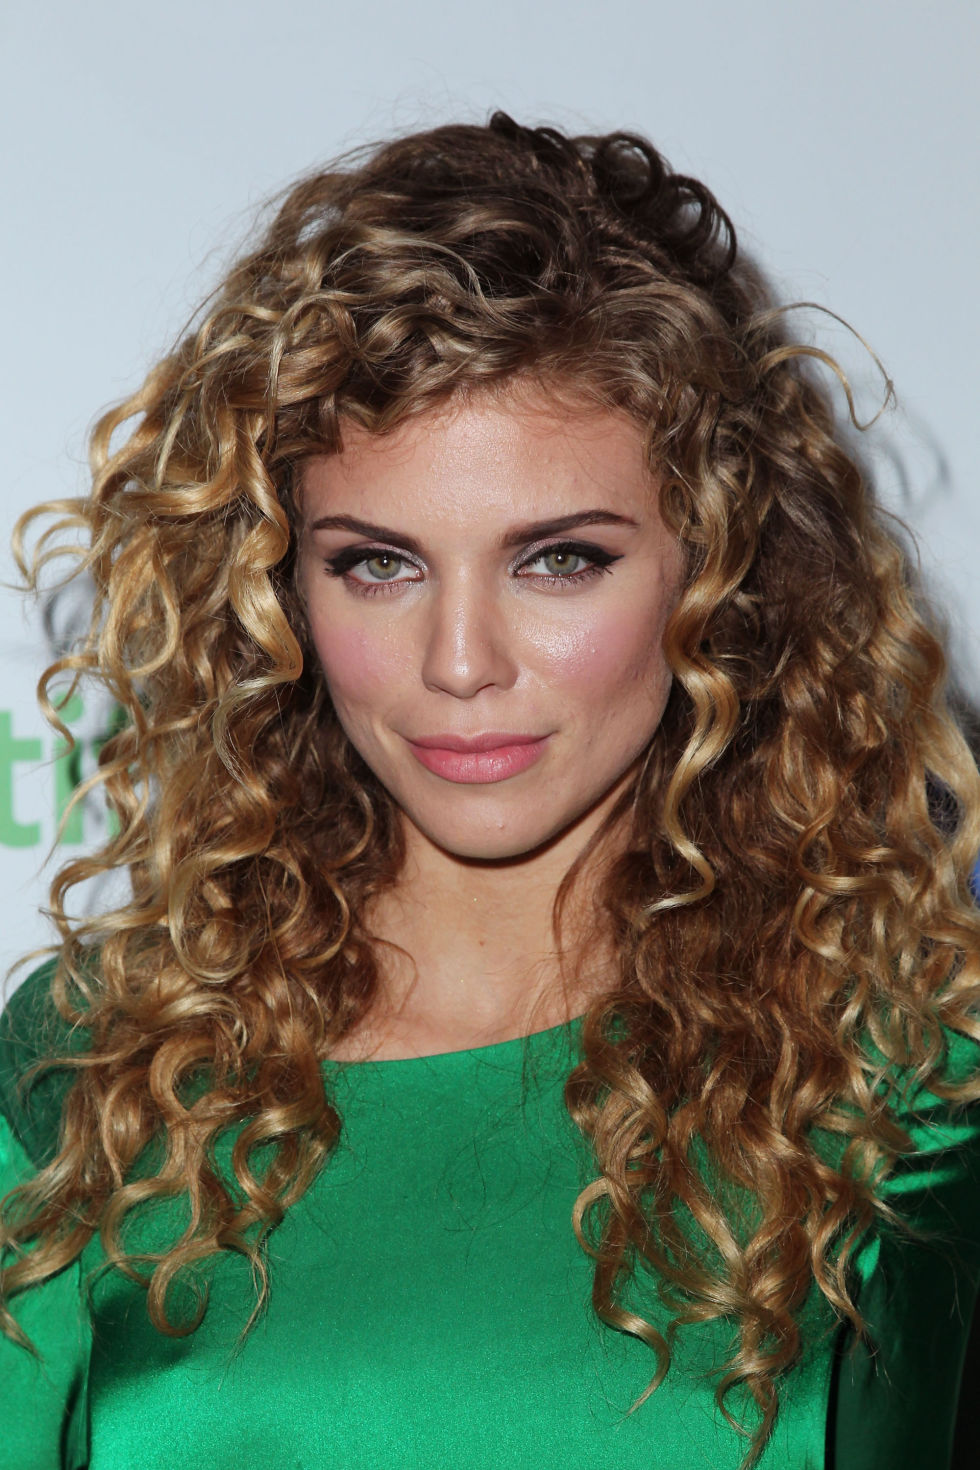 Fabulous 30 Best Curly Hairstyles Of 2017 Cute Hairstyles For Curly Hair Short Hairstyles For Black Women Fulllsitofus